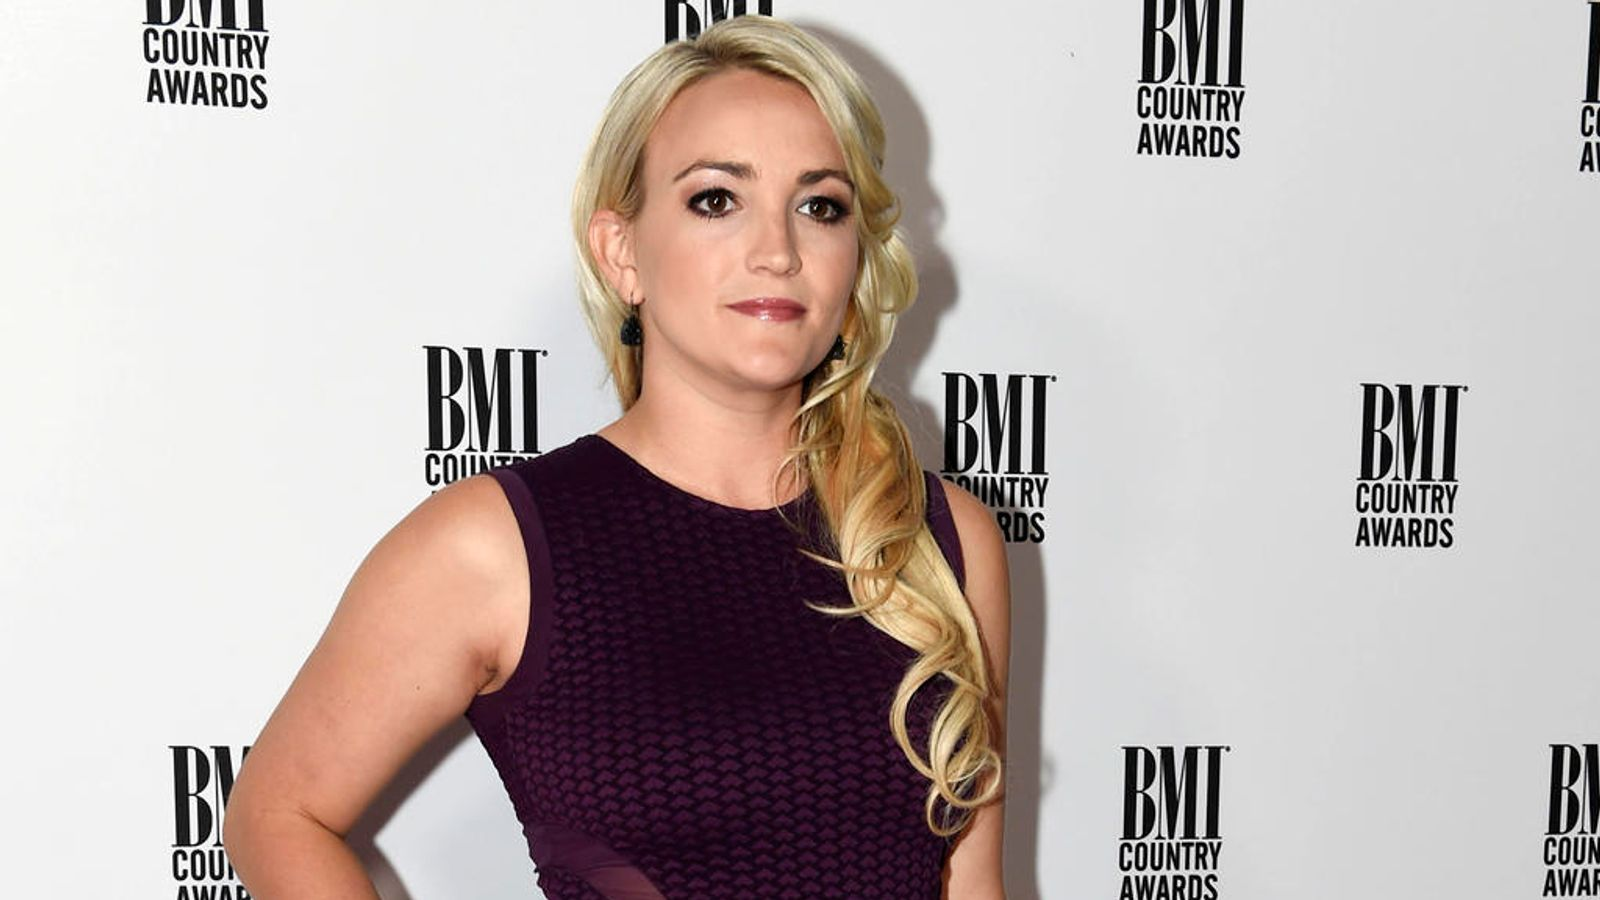 'I'm so proud of her': Jamie Lynn Spears voices support for sister Britney over conservatorship